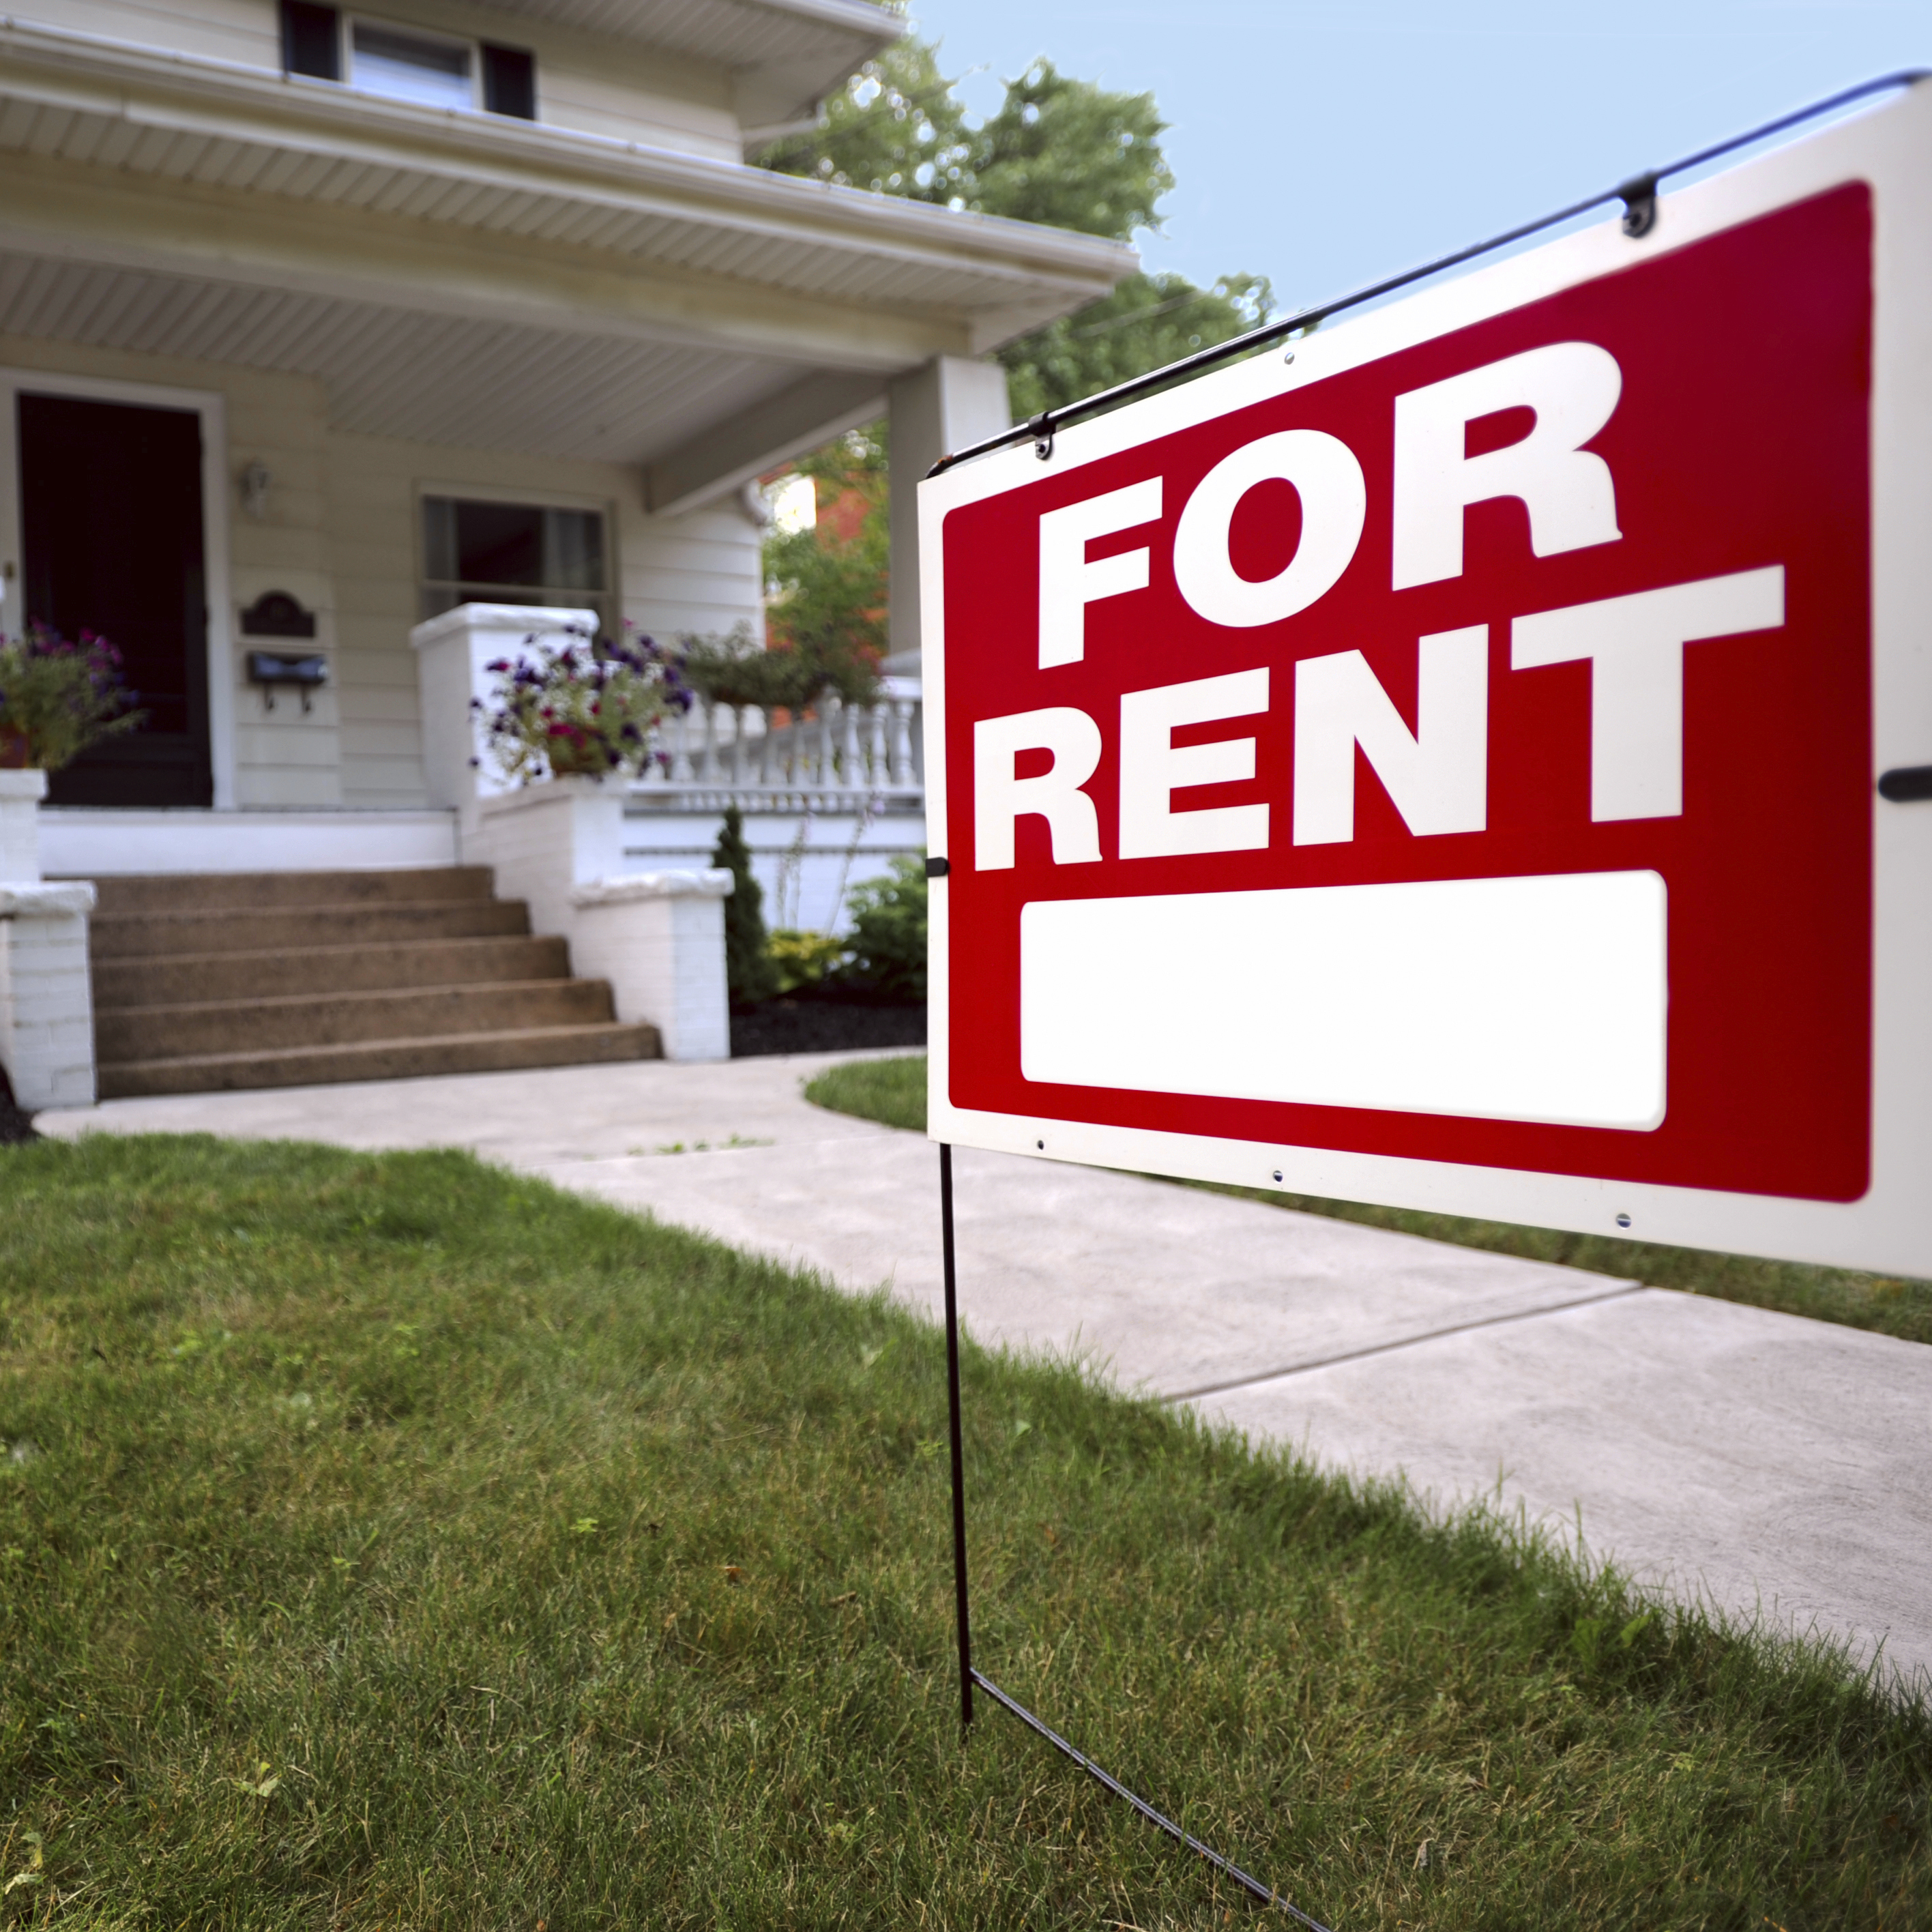 Renter's Edition: Should You Buy a House or Rent? - Ryans Search